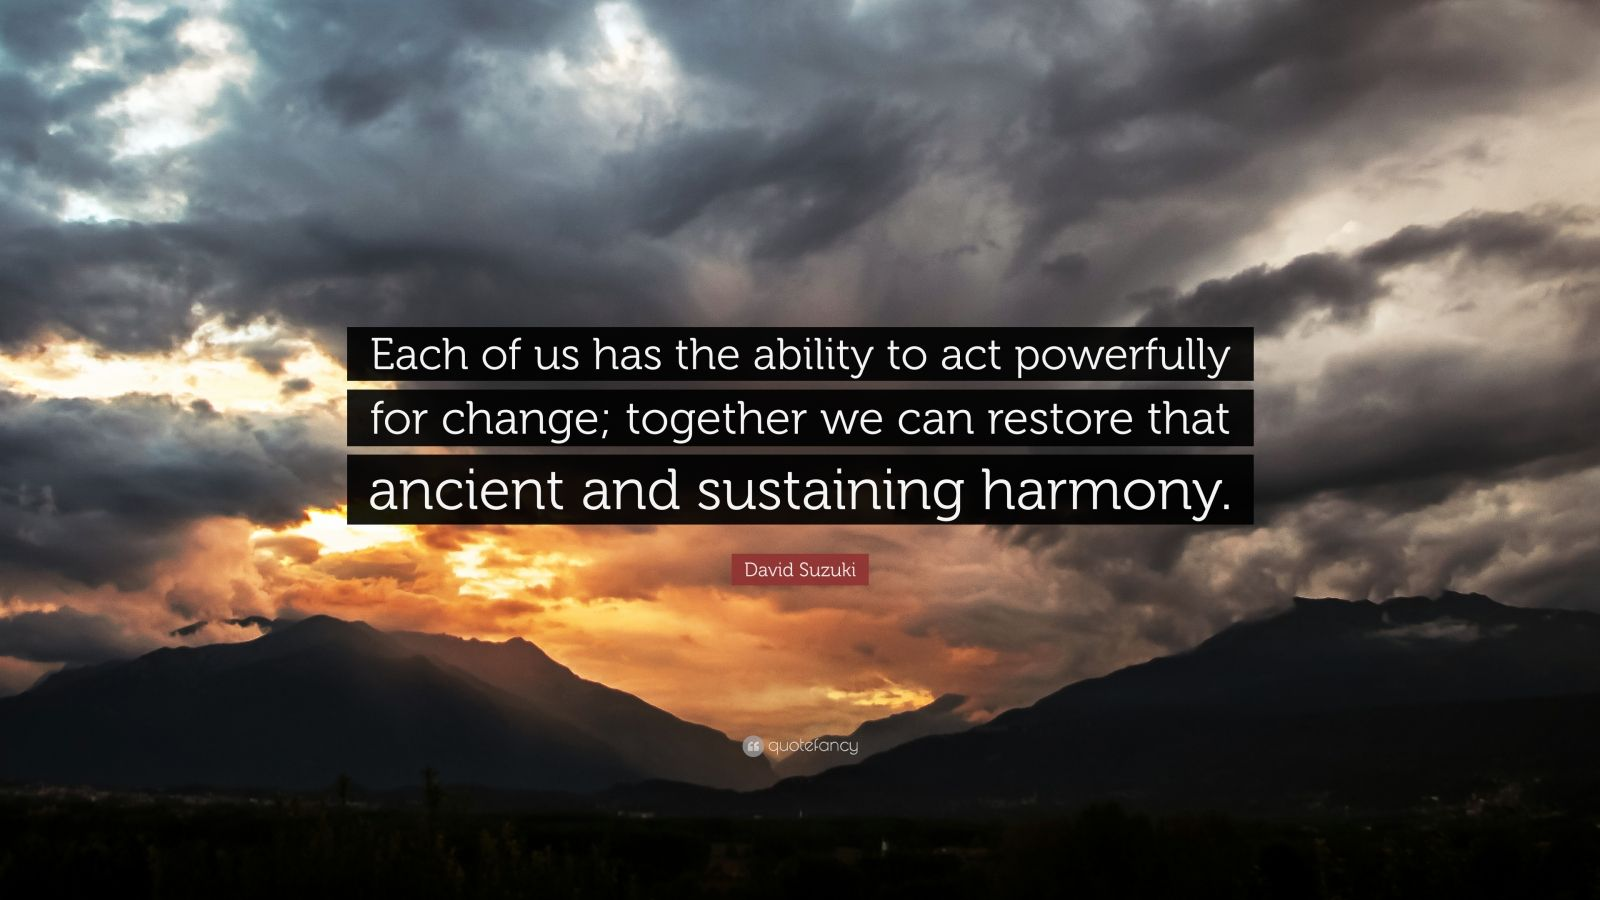 """David Suzuki Quote: """"Each of us has the ability to act powerfully for change; together we can restore that ancient and sustaining harmony."""""""